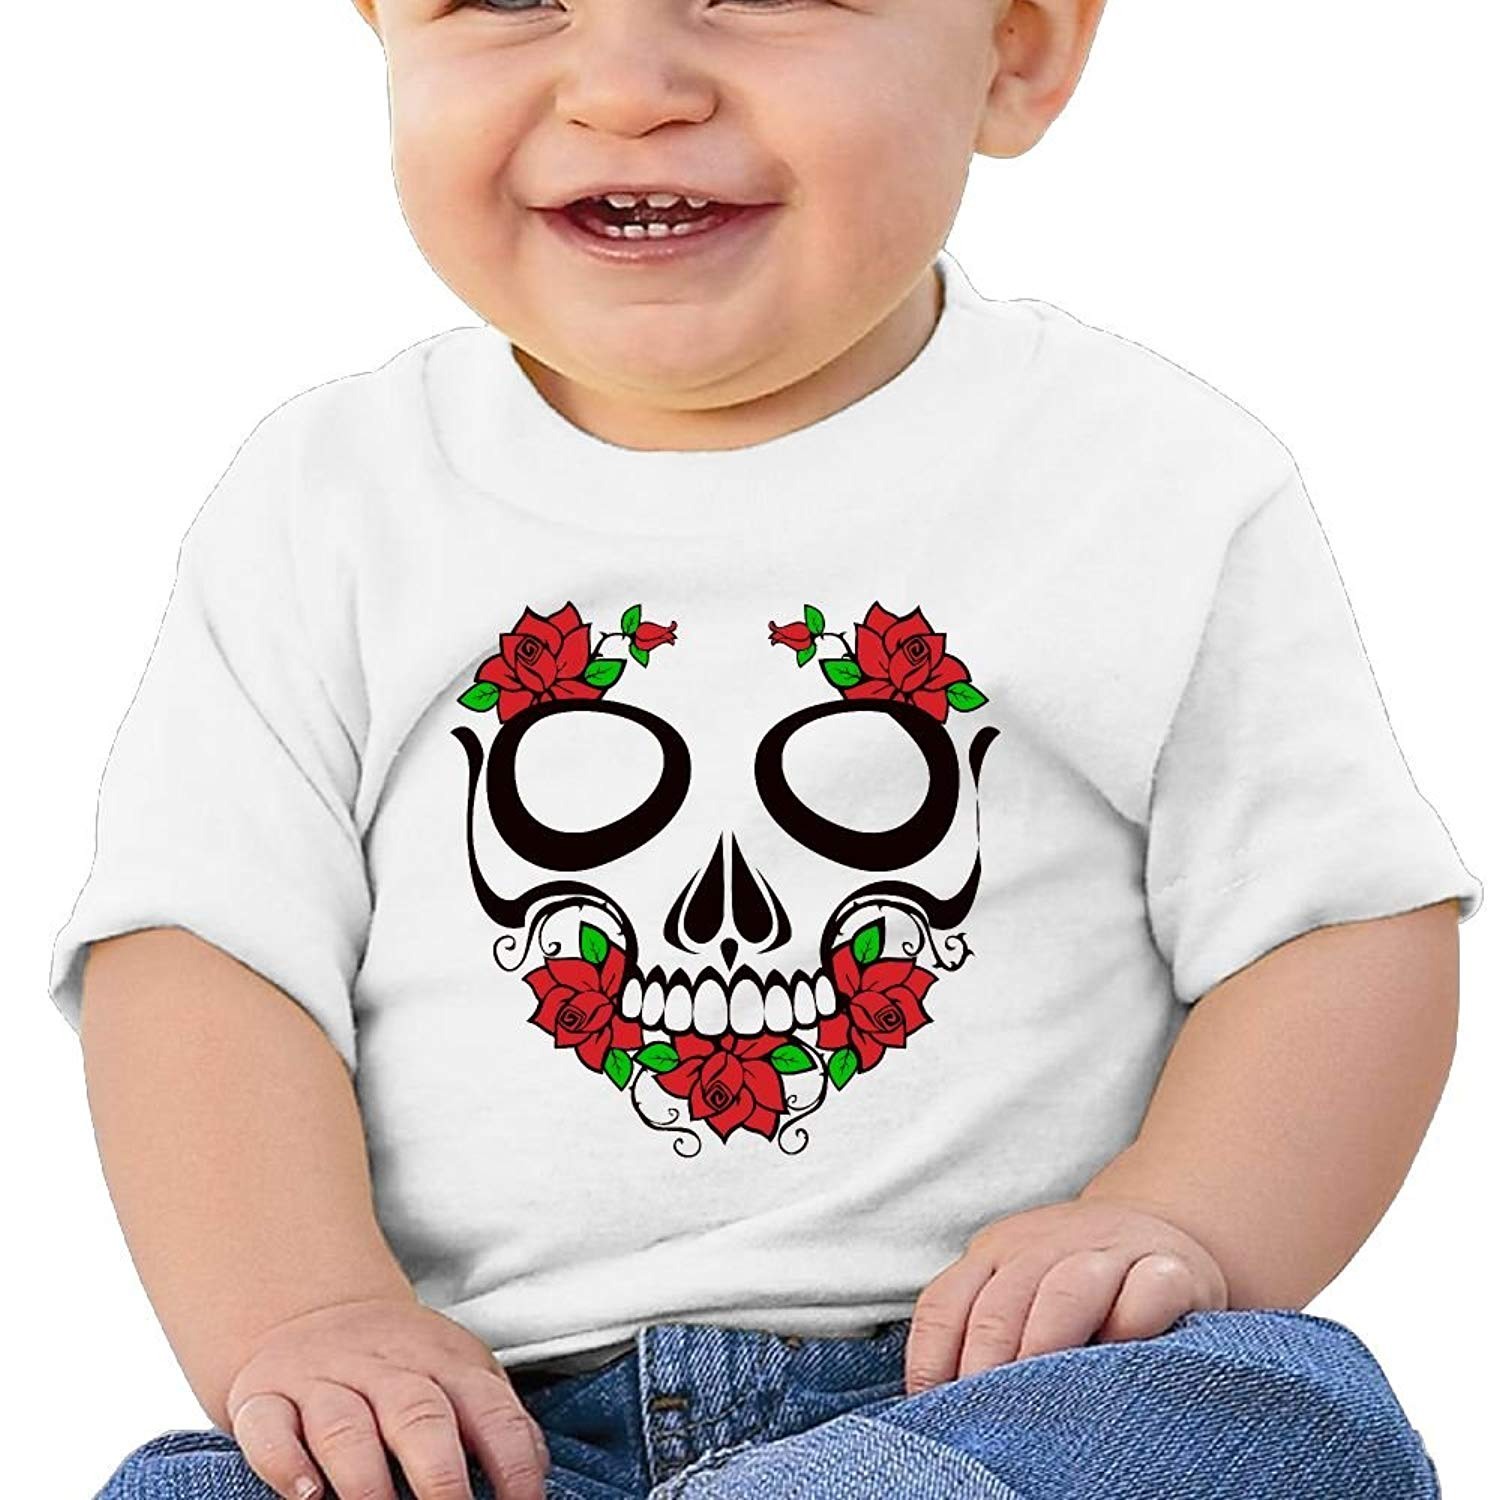 4f5719a4 Get Quotations · Skull And Roses Cute Cotton Soft O-neck Short Sleeves T- Shirt For 6